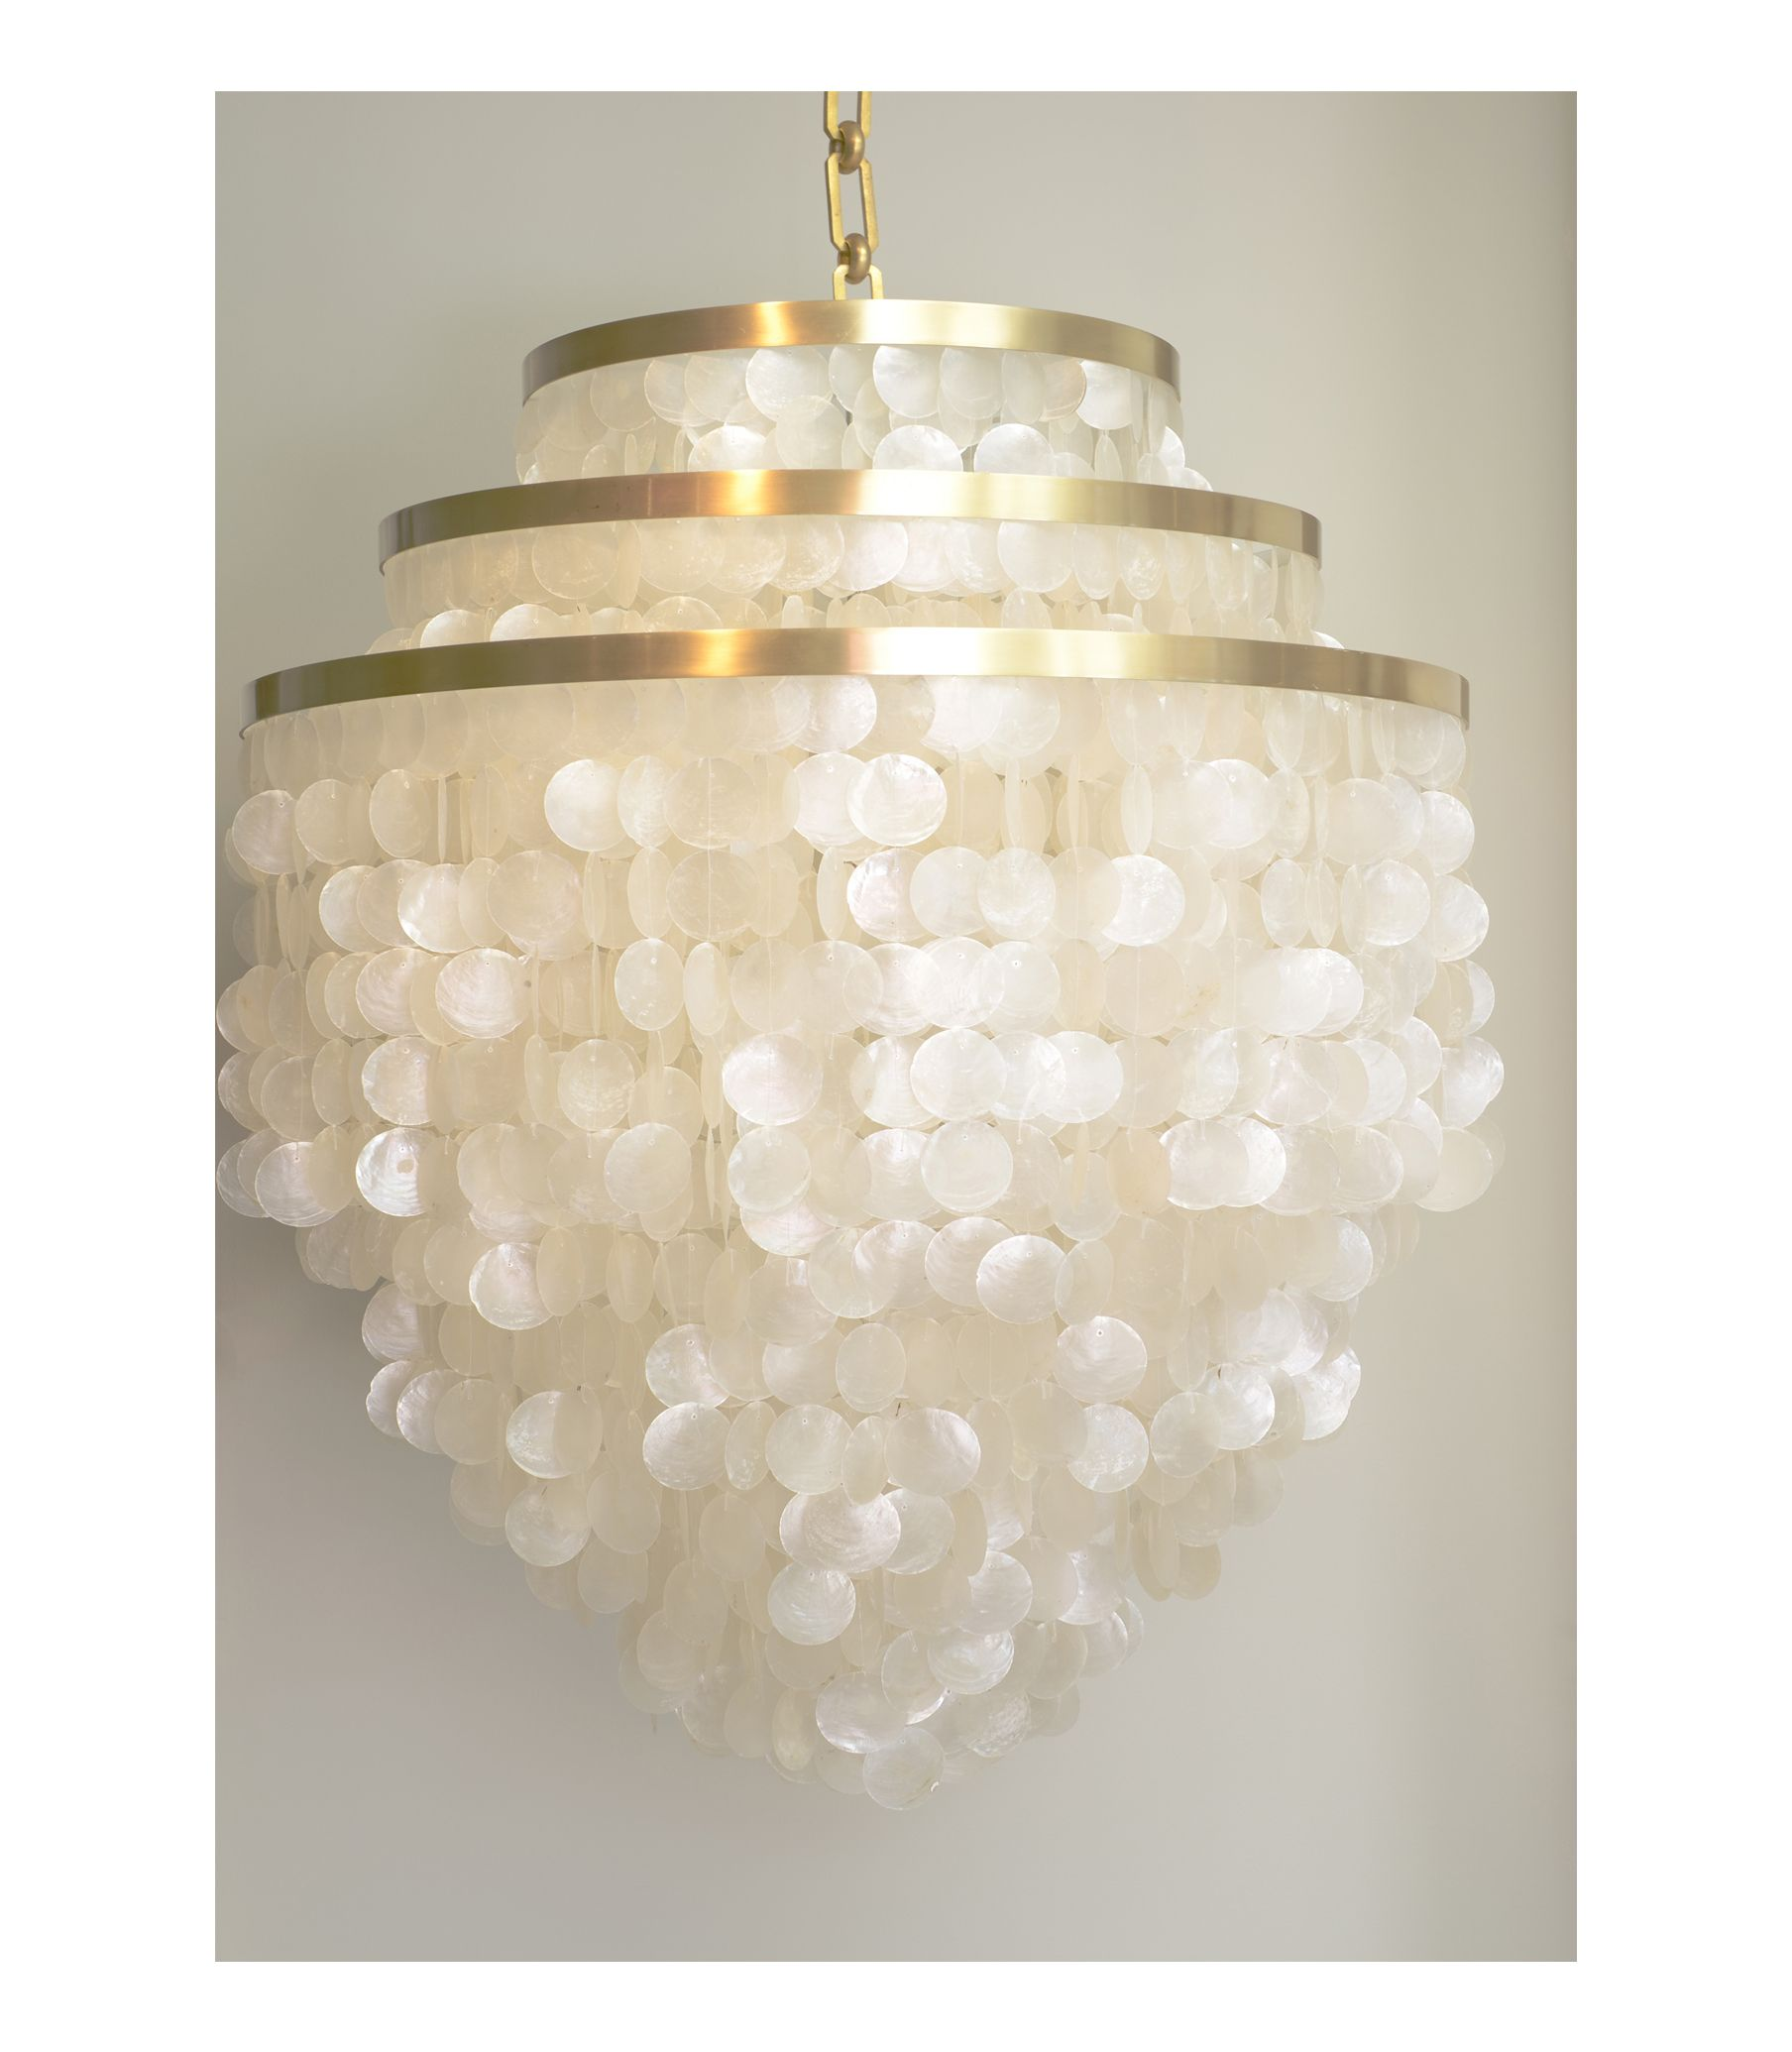 The luxury version of the capiz chandelier - Lily @ Bespoke ...